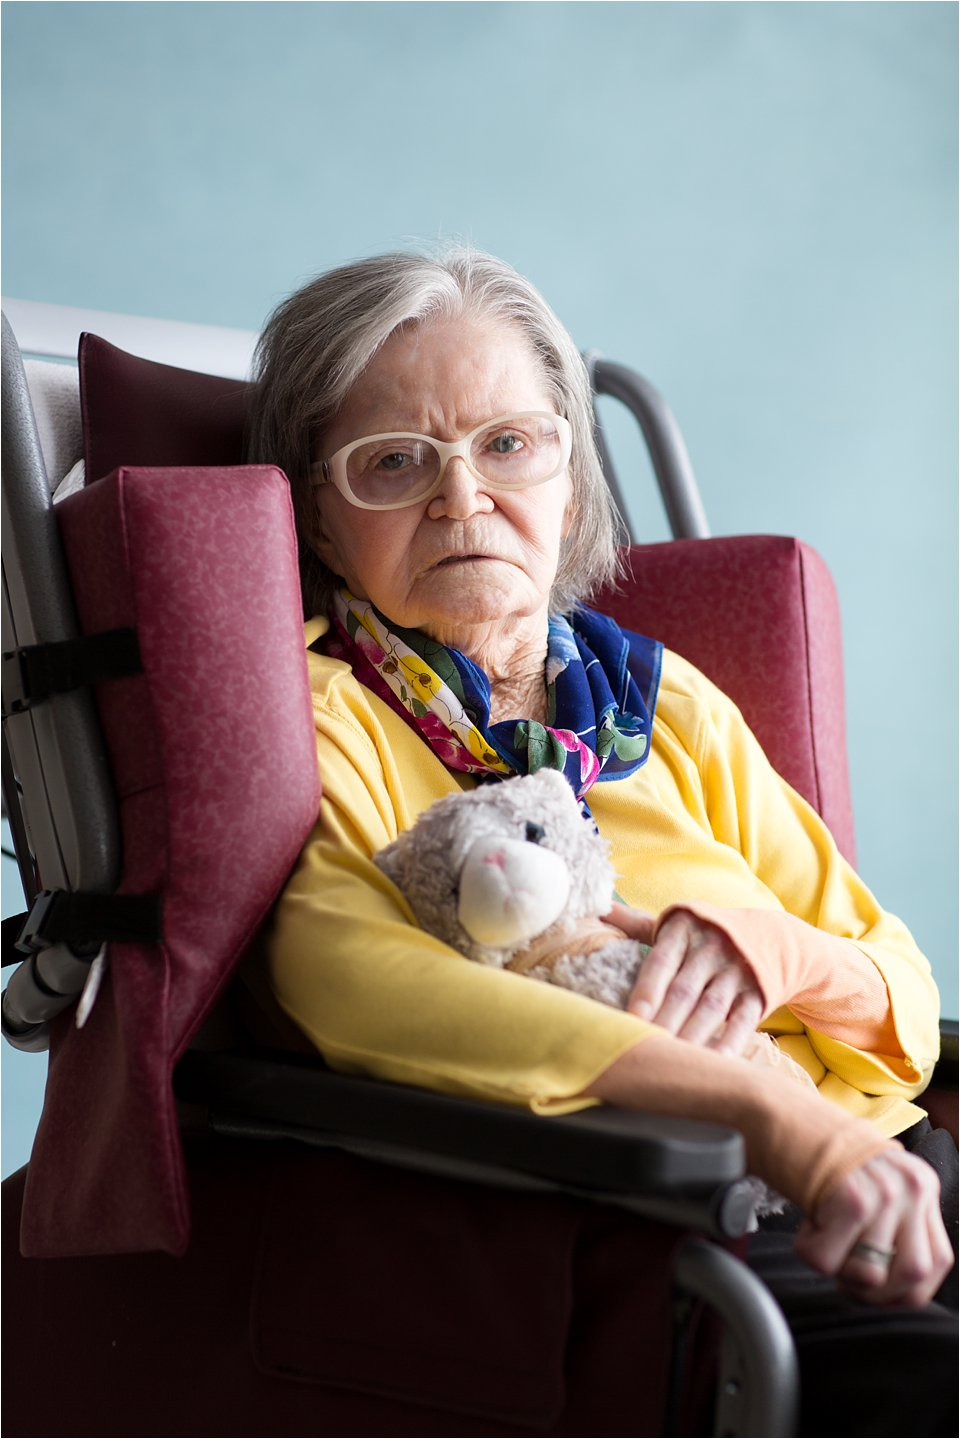 Elderly woman with stuffed animal (C) Maundy Mitchell